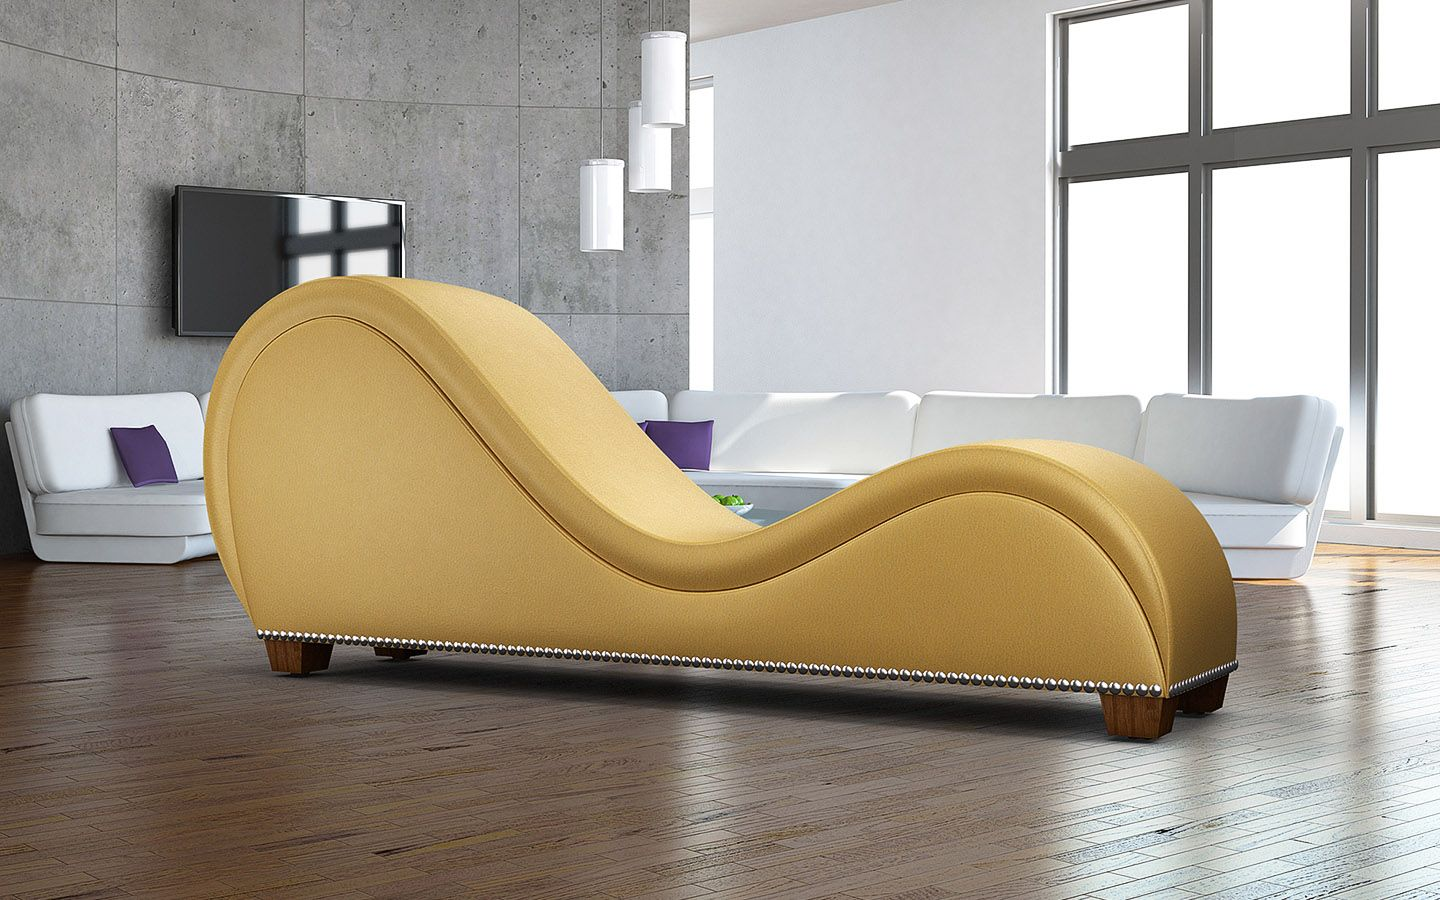 Tantra Sofa Chair Tantra Chair - Google Search | Stuff To Buy | Sofa, Sofa